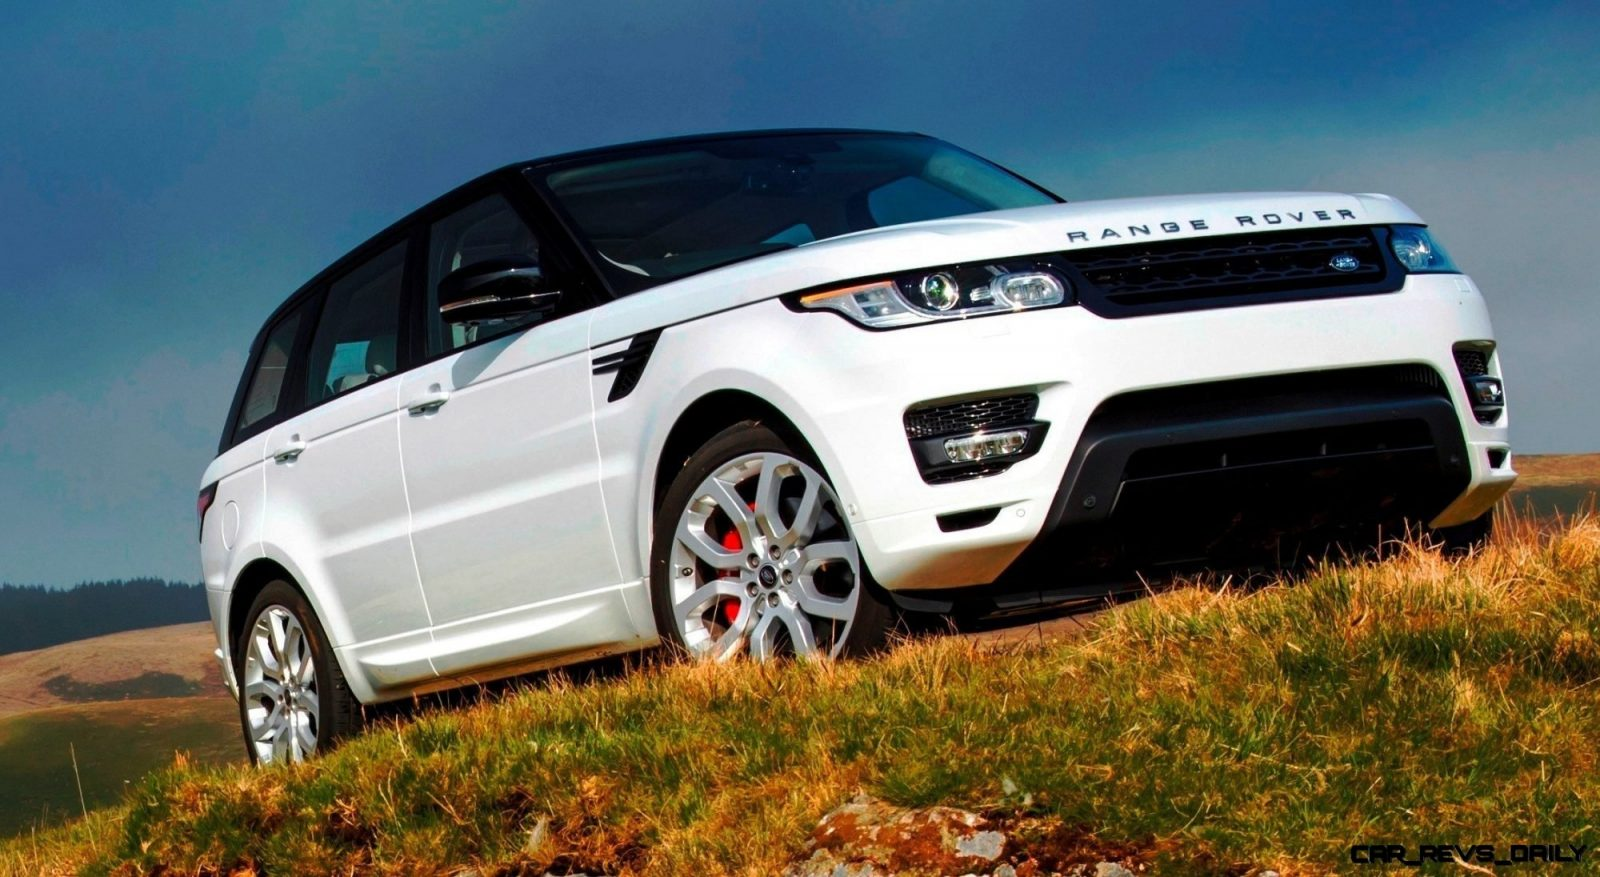 range rover facebook giveaway range rover asks wanna play iamdriven contest 5599